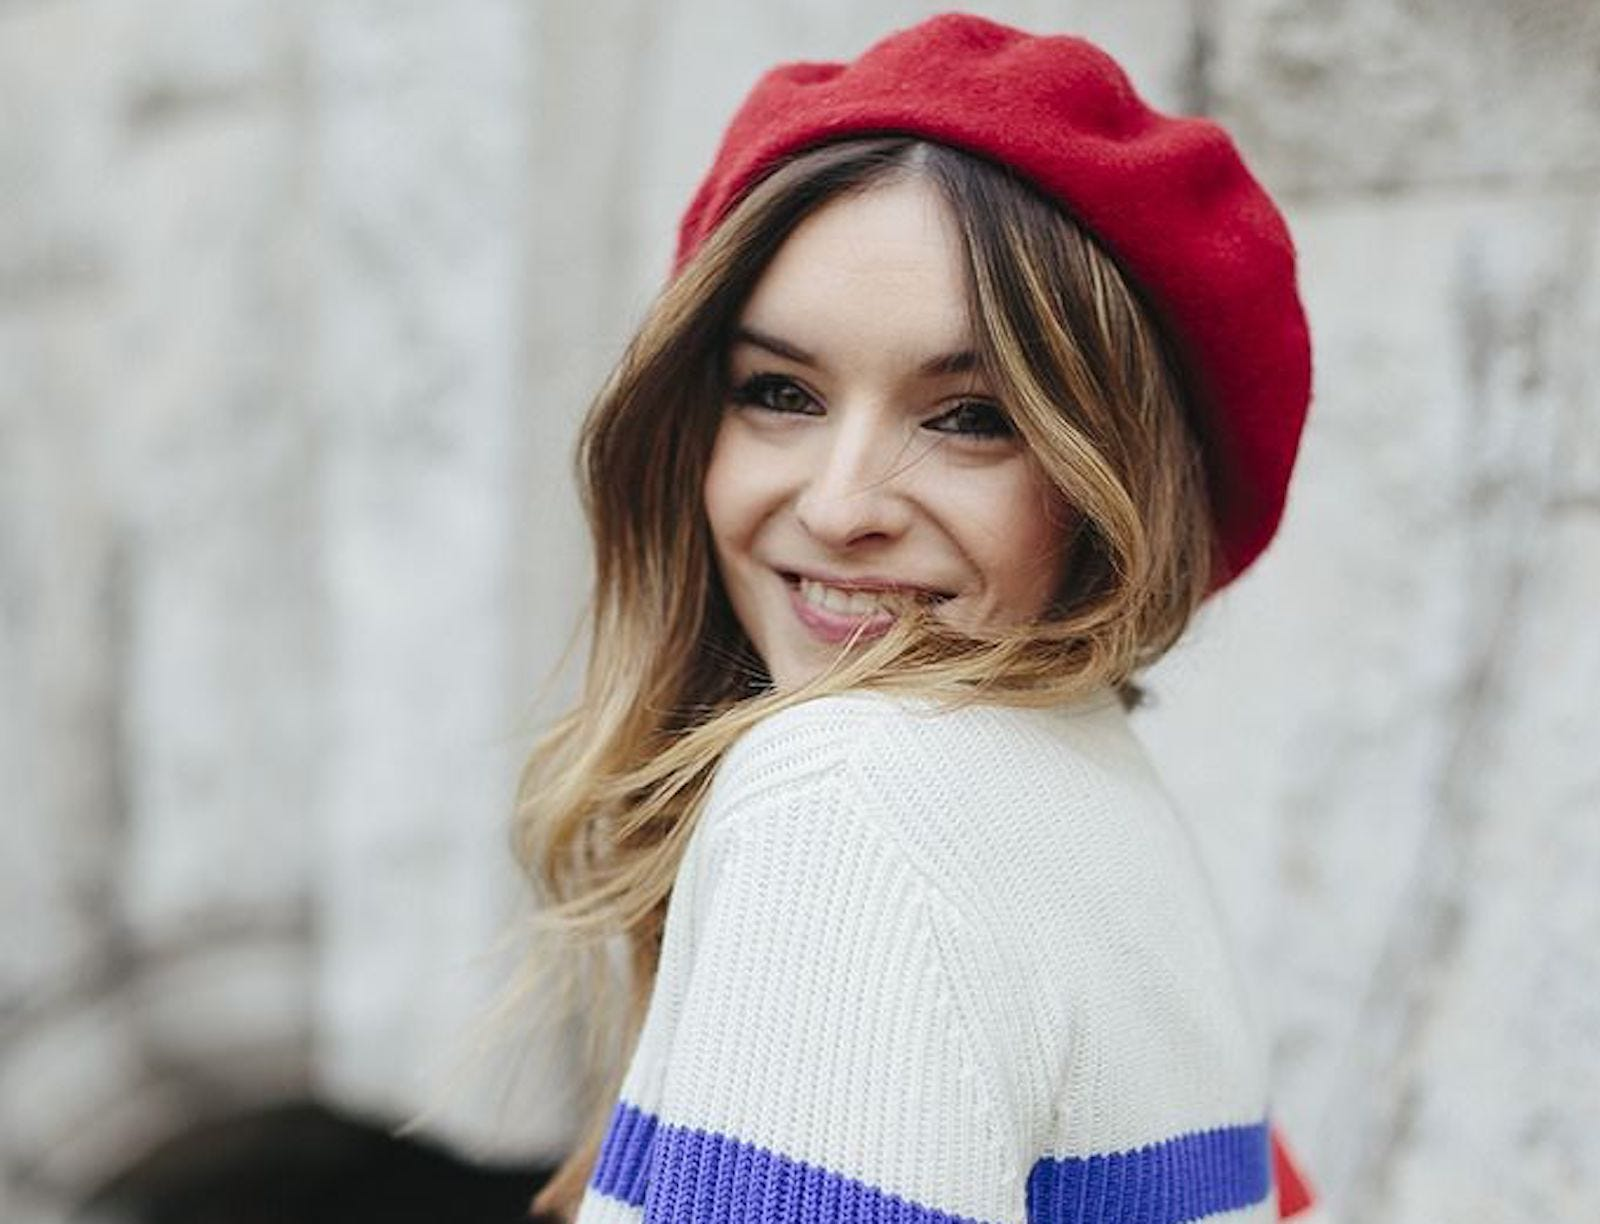 A woman wearing a white sweater with a blue stripe and a red wool beret